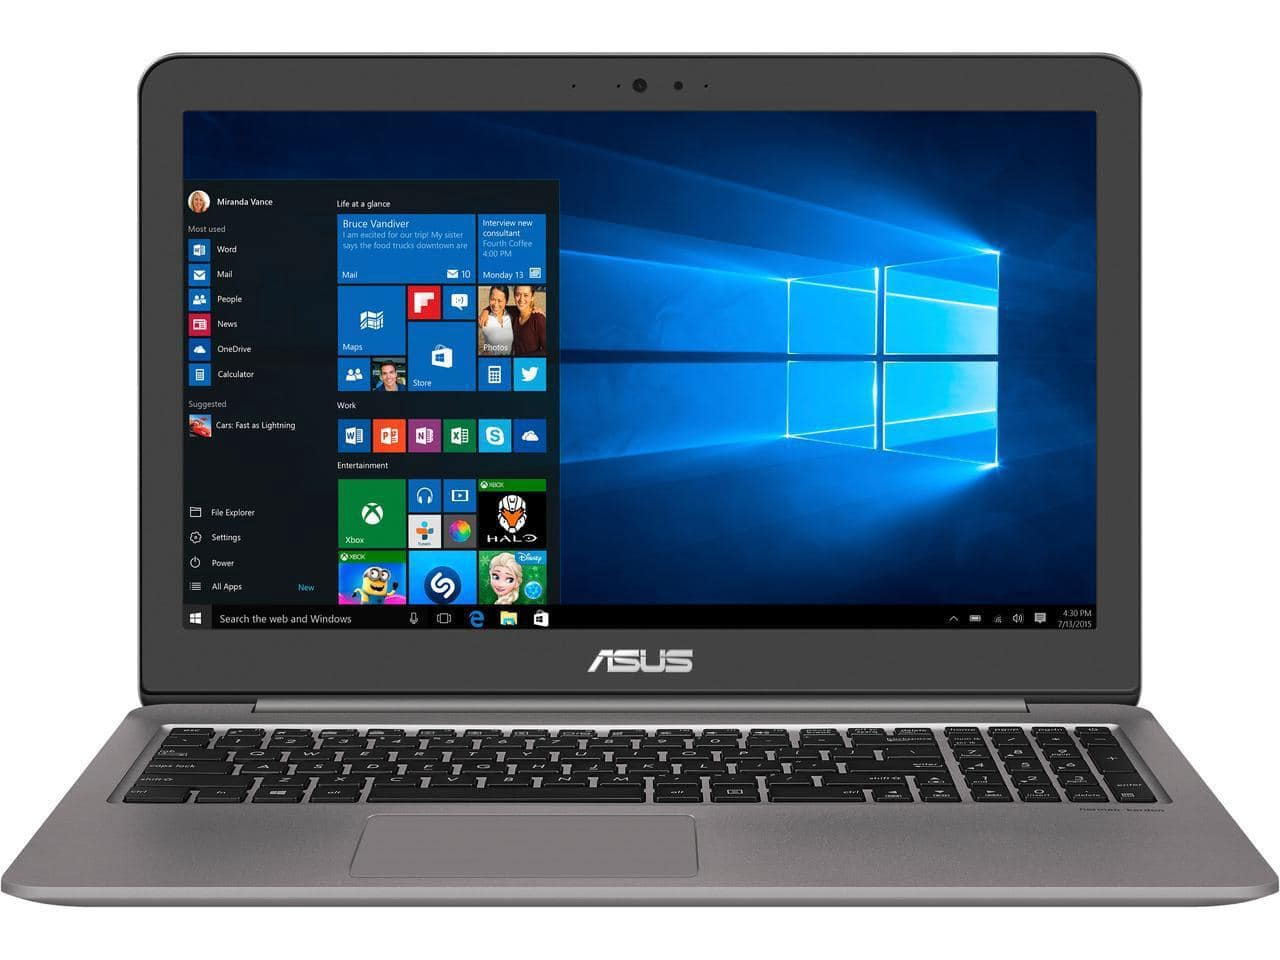 "ASUS Zenbook UX510UX-NH74 15.6"" Intel Core i7 7th Gen 7500U (2.70 GHz) NVIDIA GeForce GTX 950M 8 GB Memory 256GB SSD 1 TB HDD $839.00 + FS"